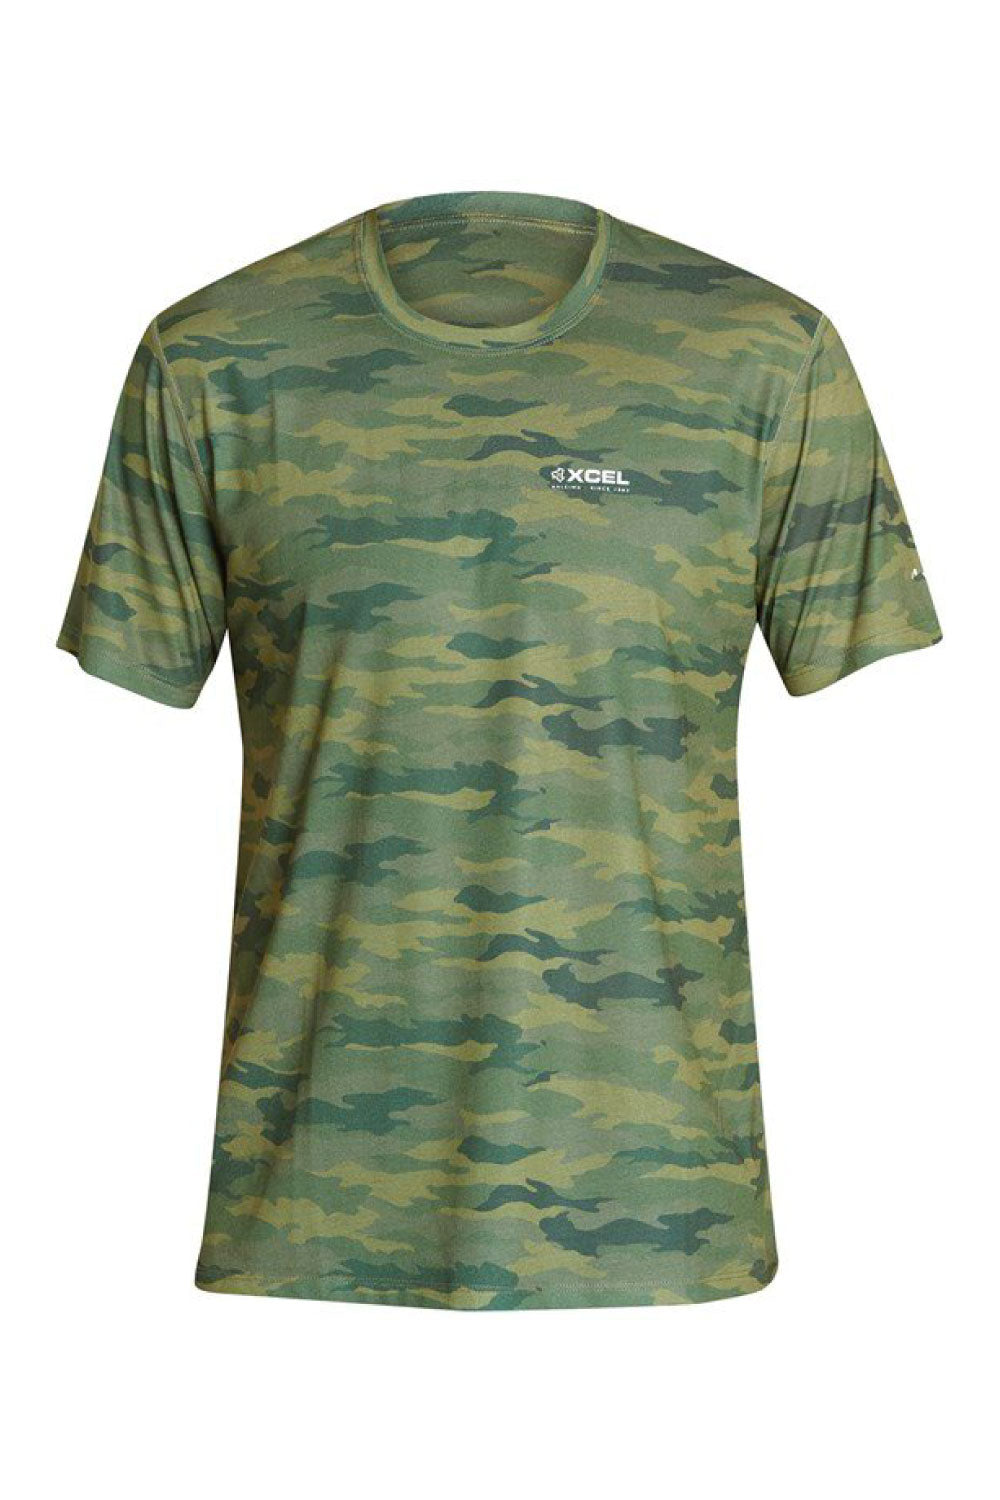 Xcel ThreadX Hawaiian Camo Short Sleeve Rashshirt